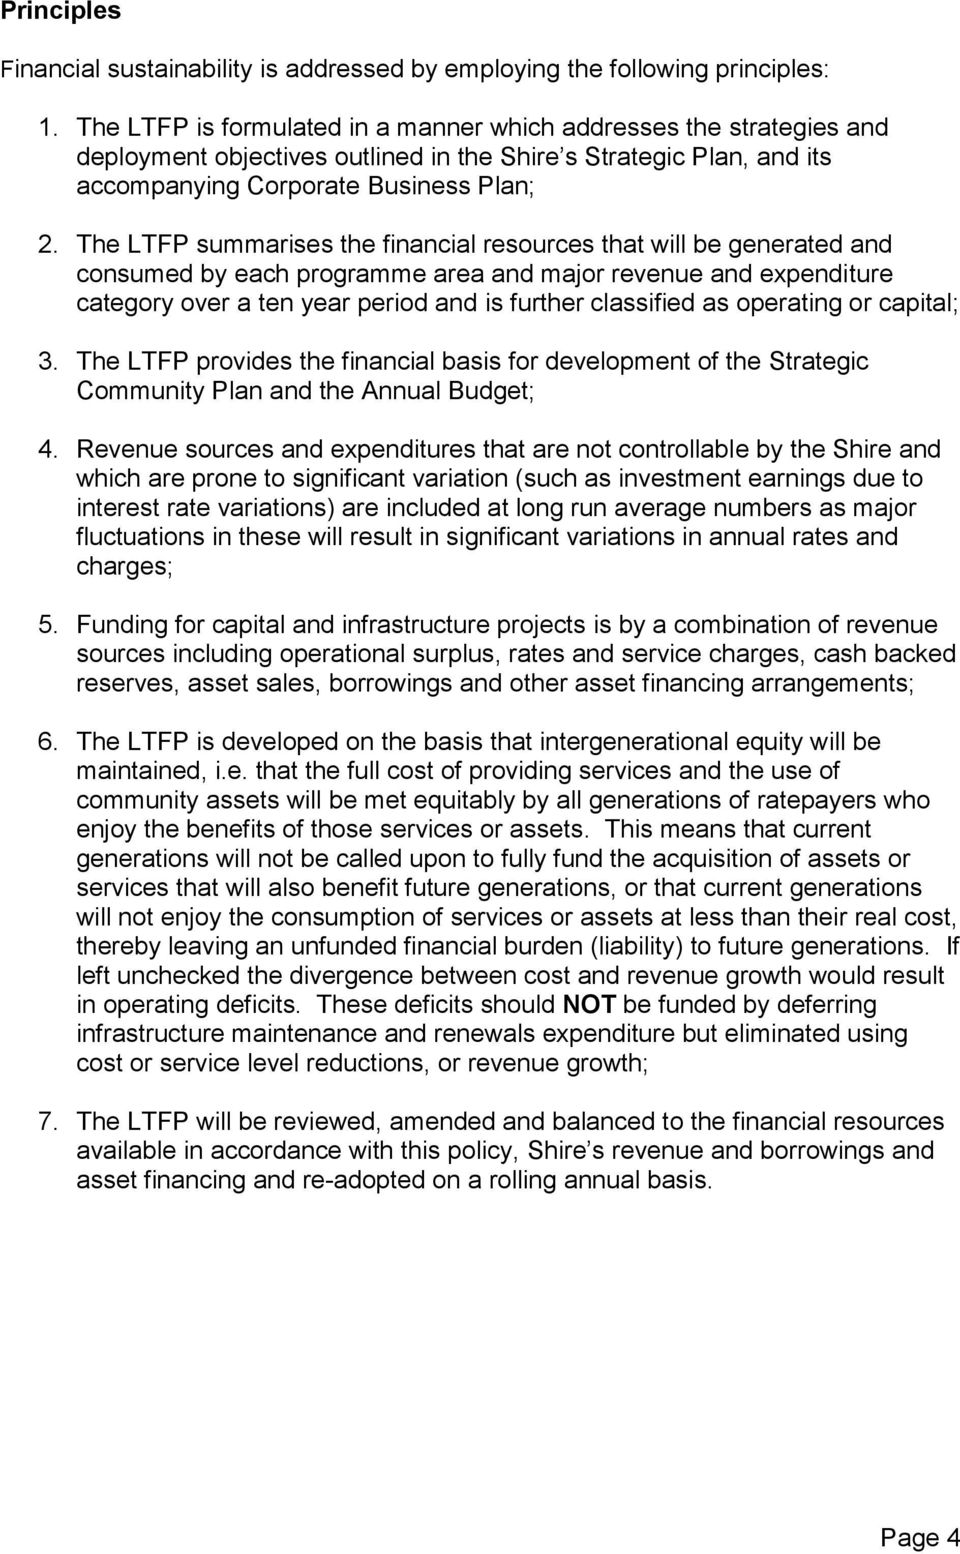 The LTFP summarises the financial resources that will be generated and consumed by each programme area and major revenue and expenditure category over a ten year period and is further classified as